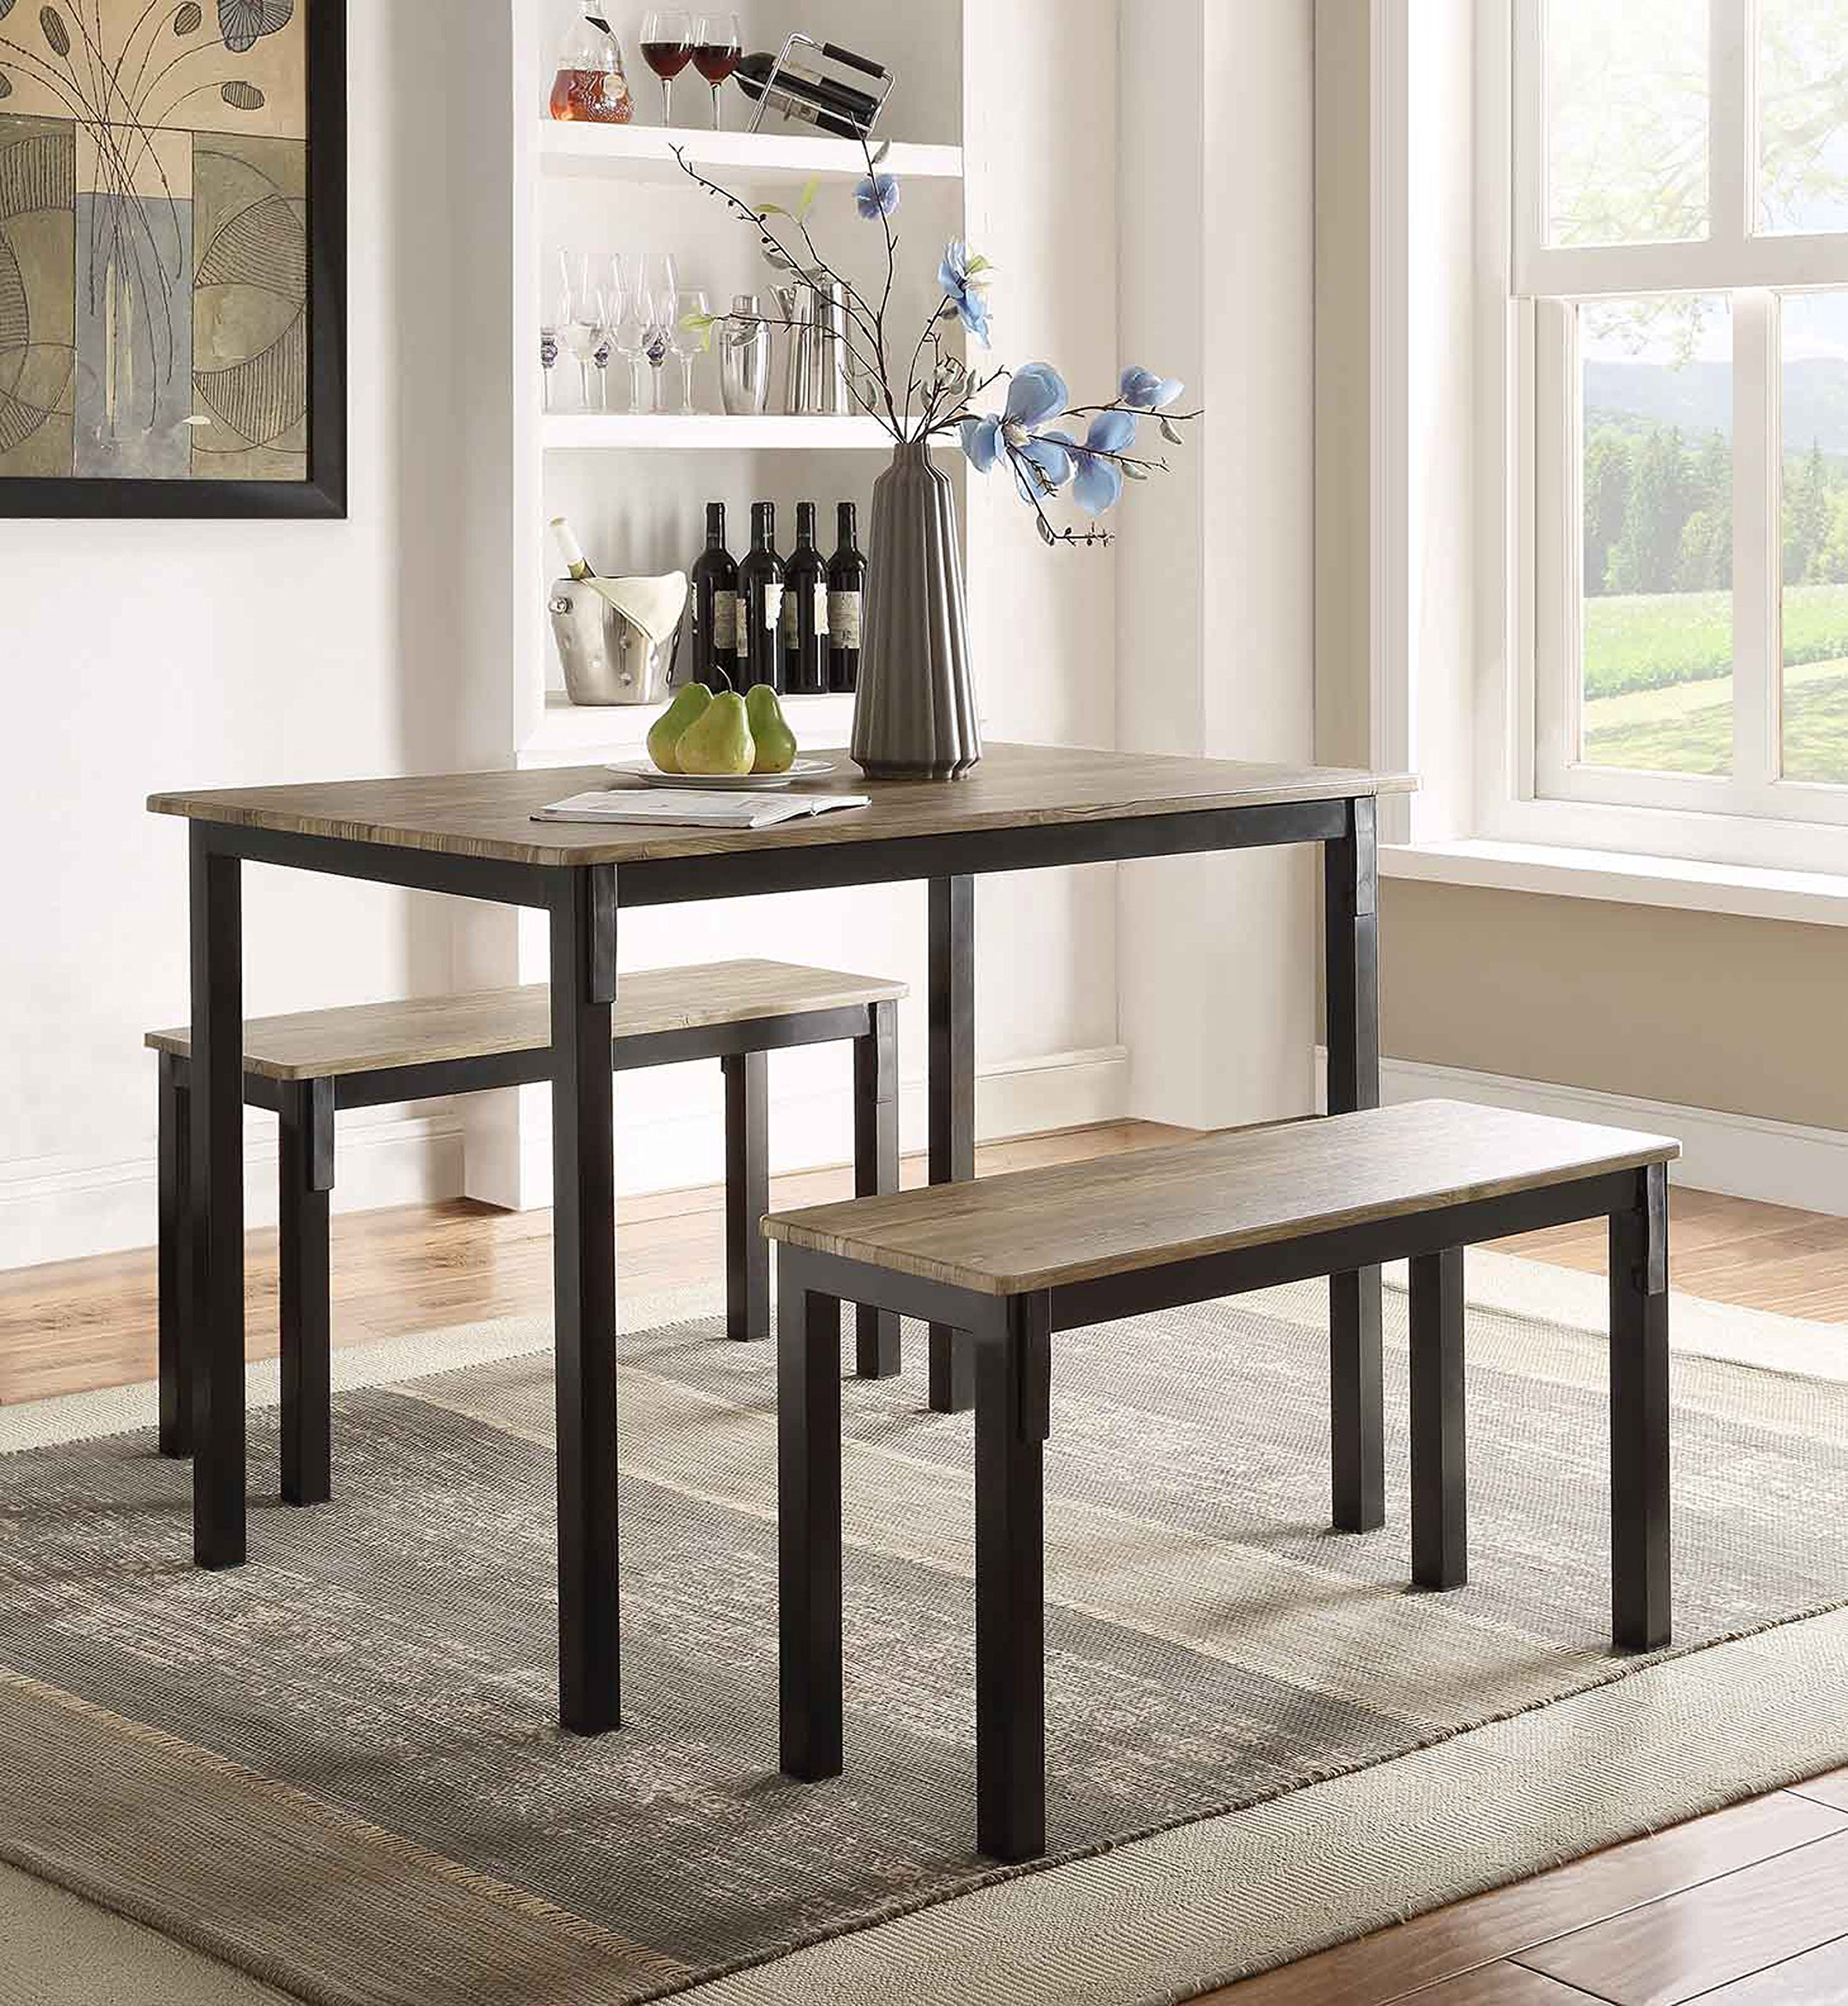 Boltzero Dining Table with 2 Benches -  - kitchen-dining-room-furniture, kitchen-dining-room, kitchen-dining-room-tables - A104b jjRLL -